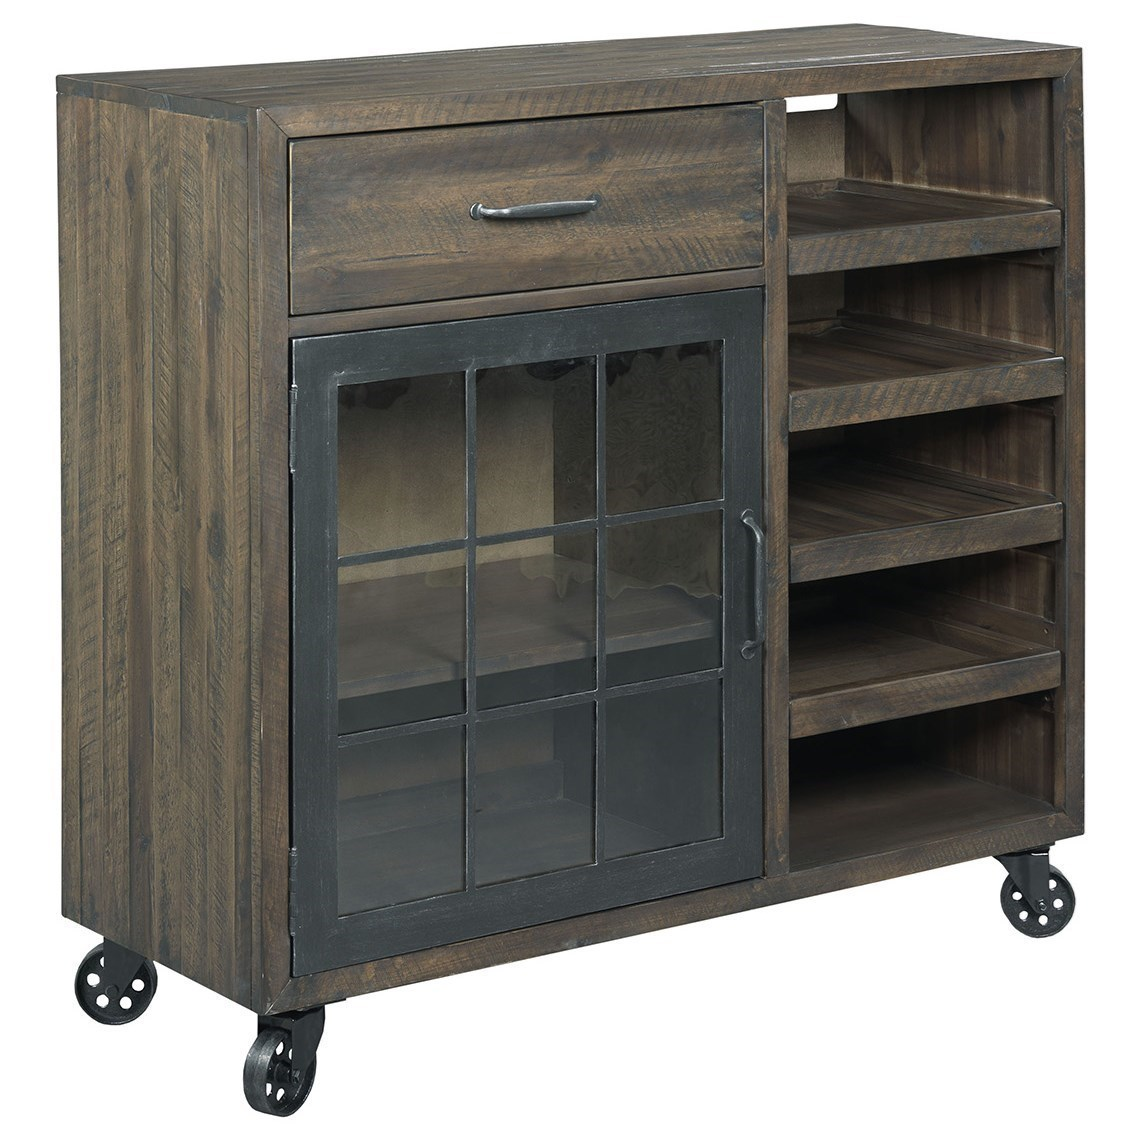 Rustic Bar Trolley with Metal Casters